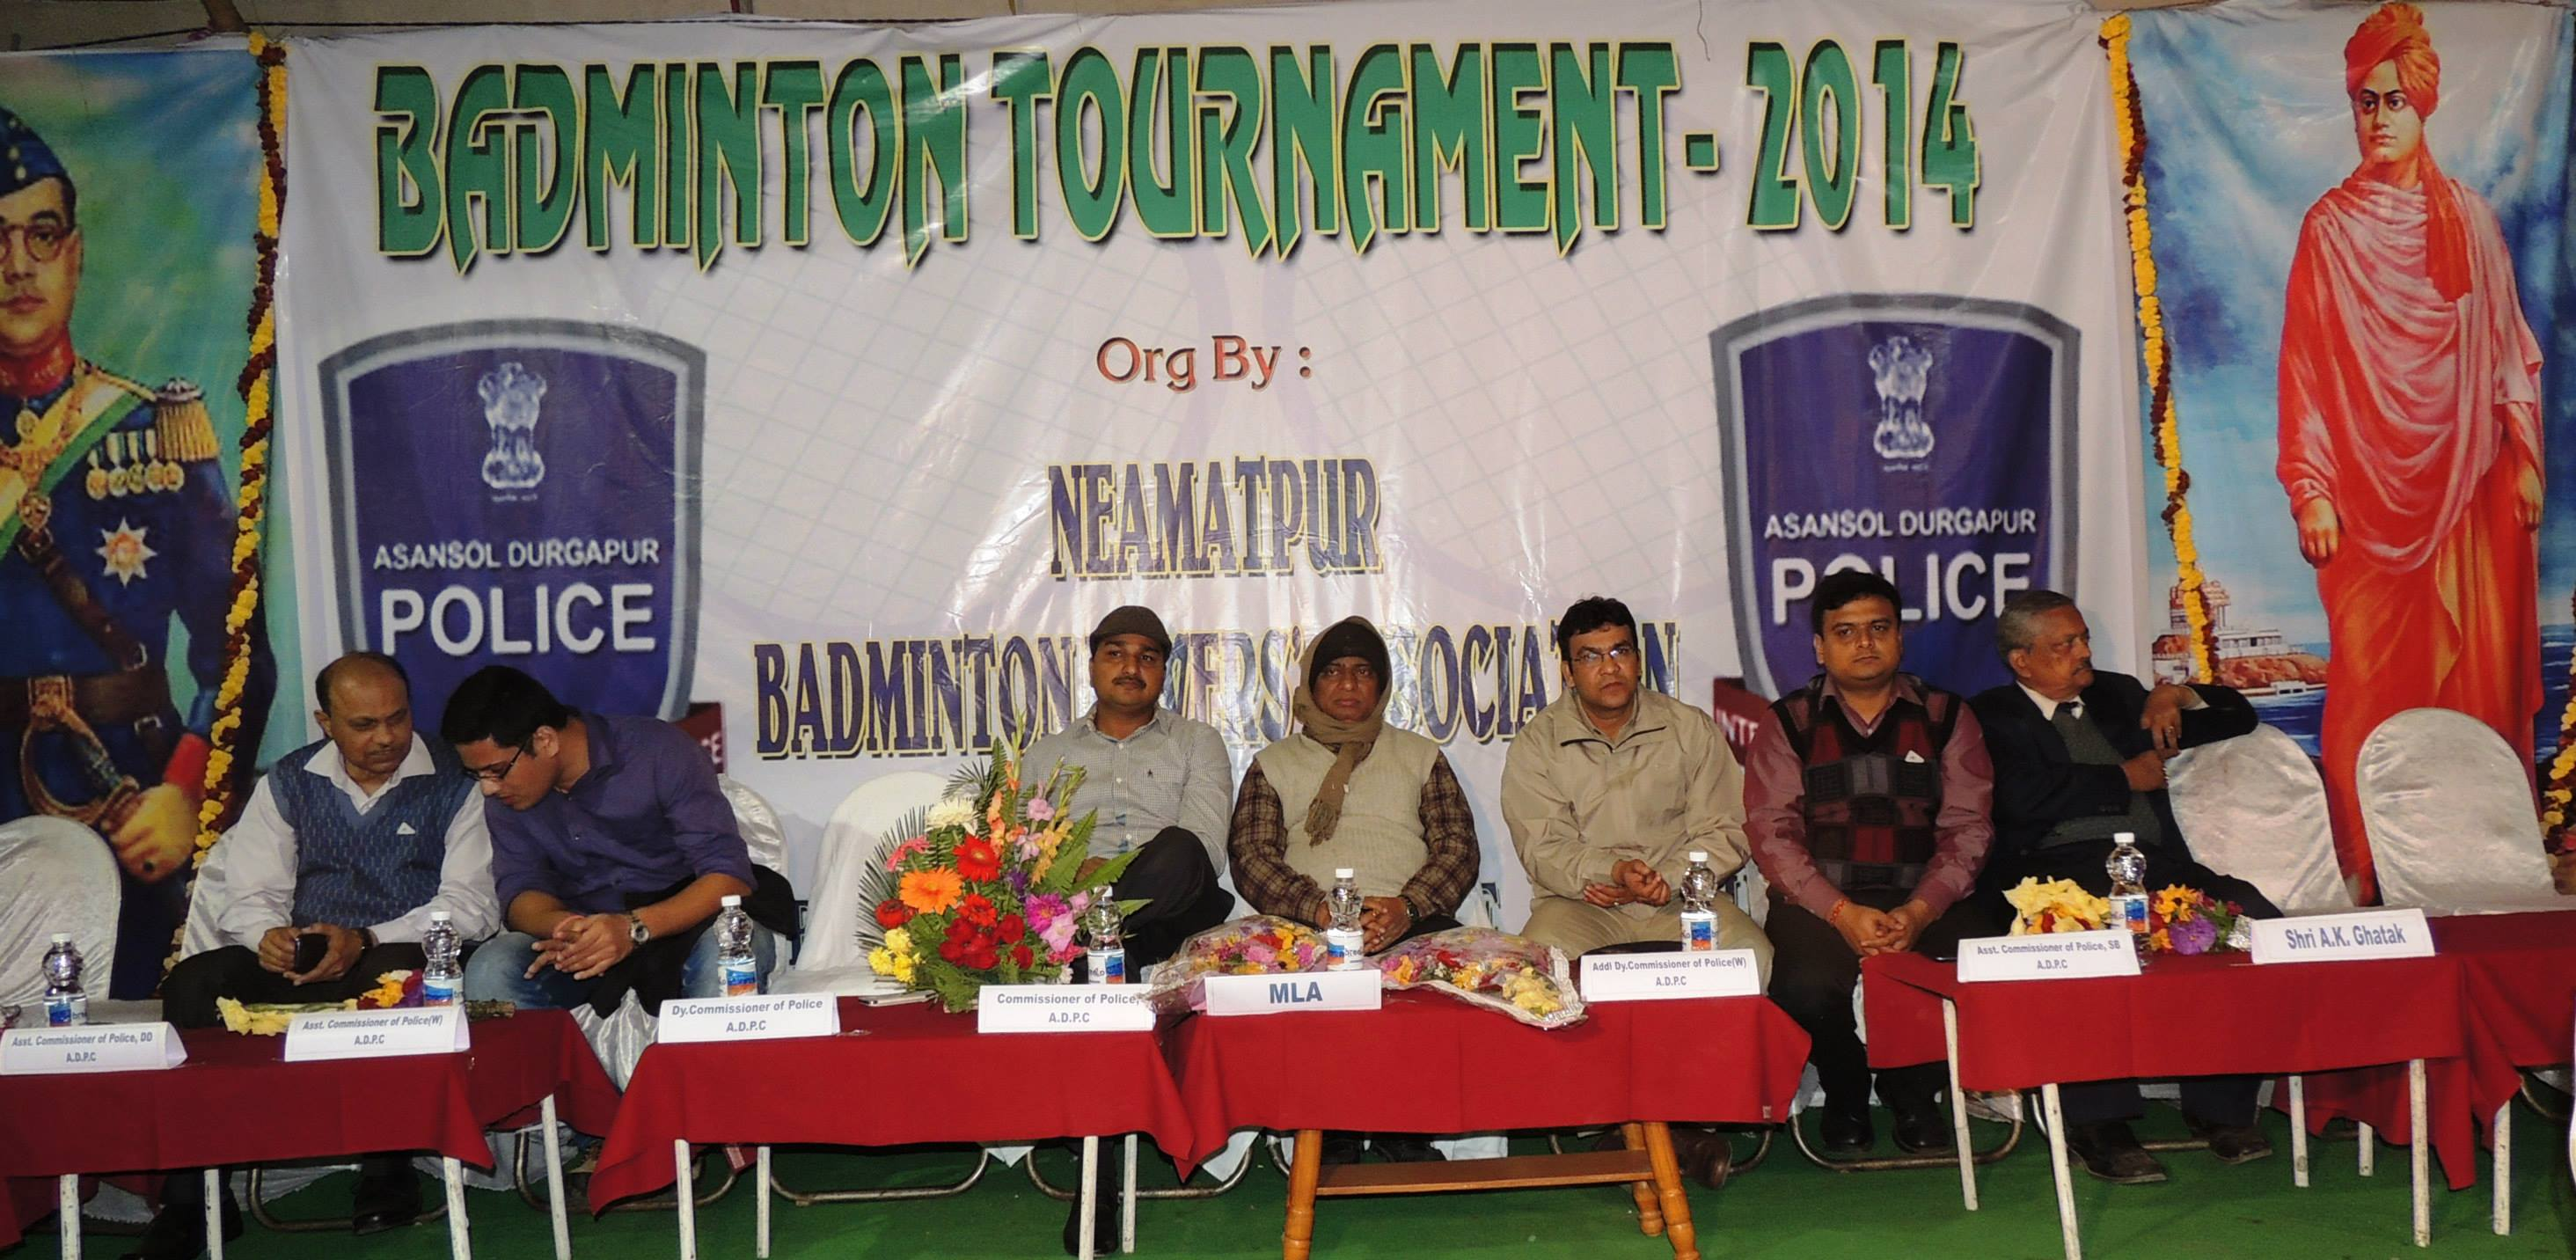 Badmintan Tournament at Neamatpur IC Play Ground under Kulti PS